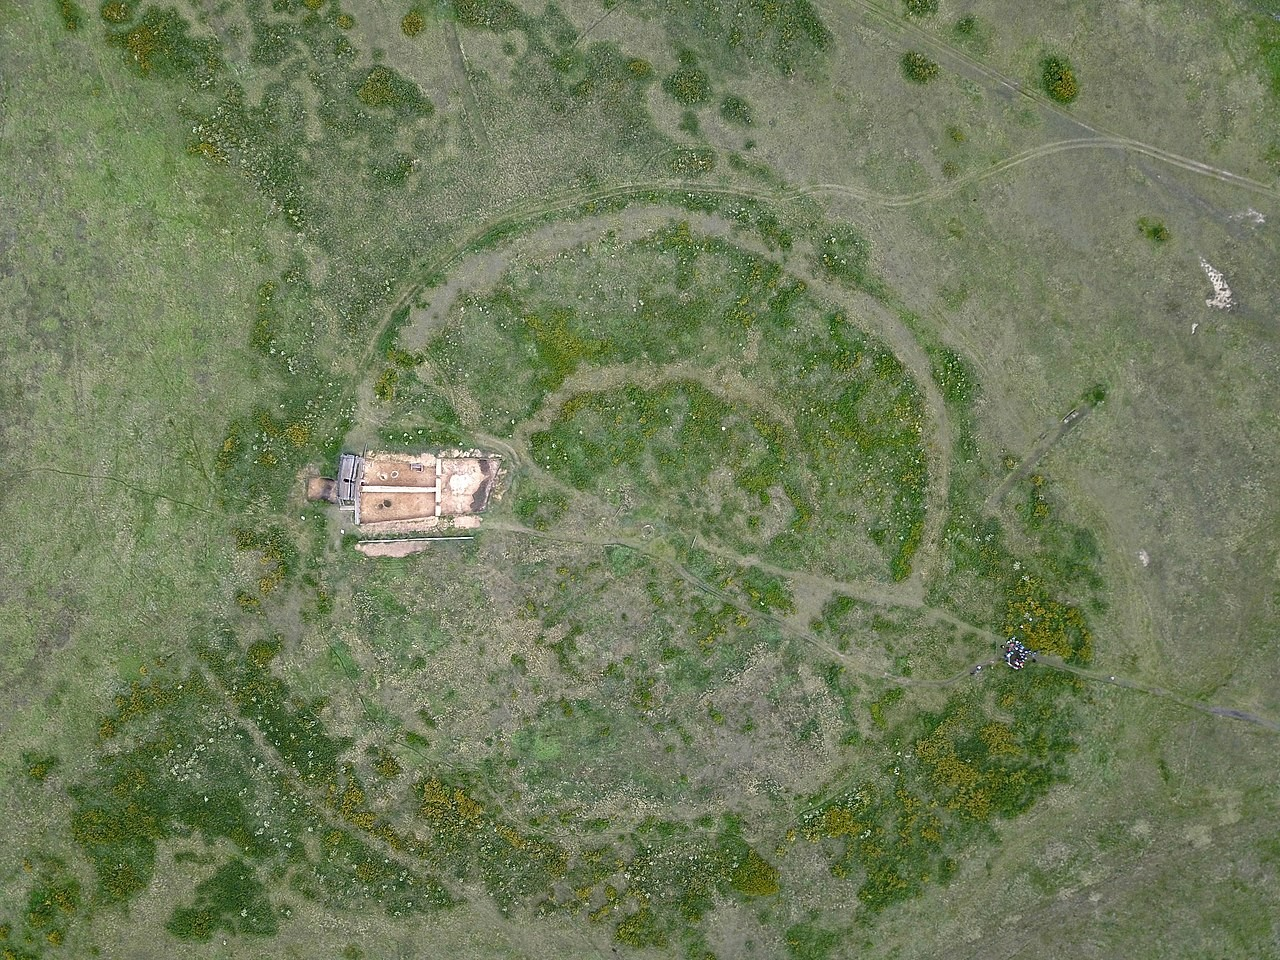 The Arkaim site as seen from above